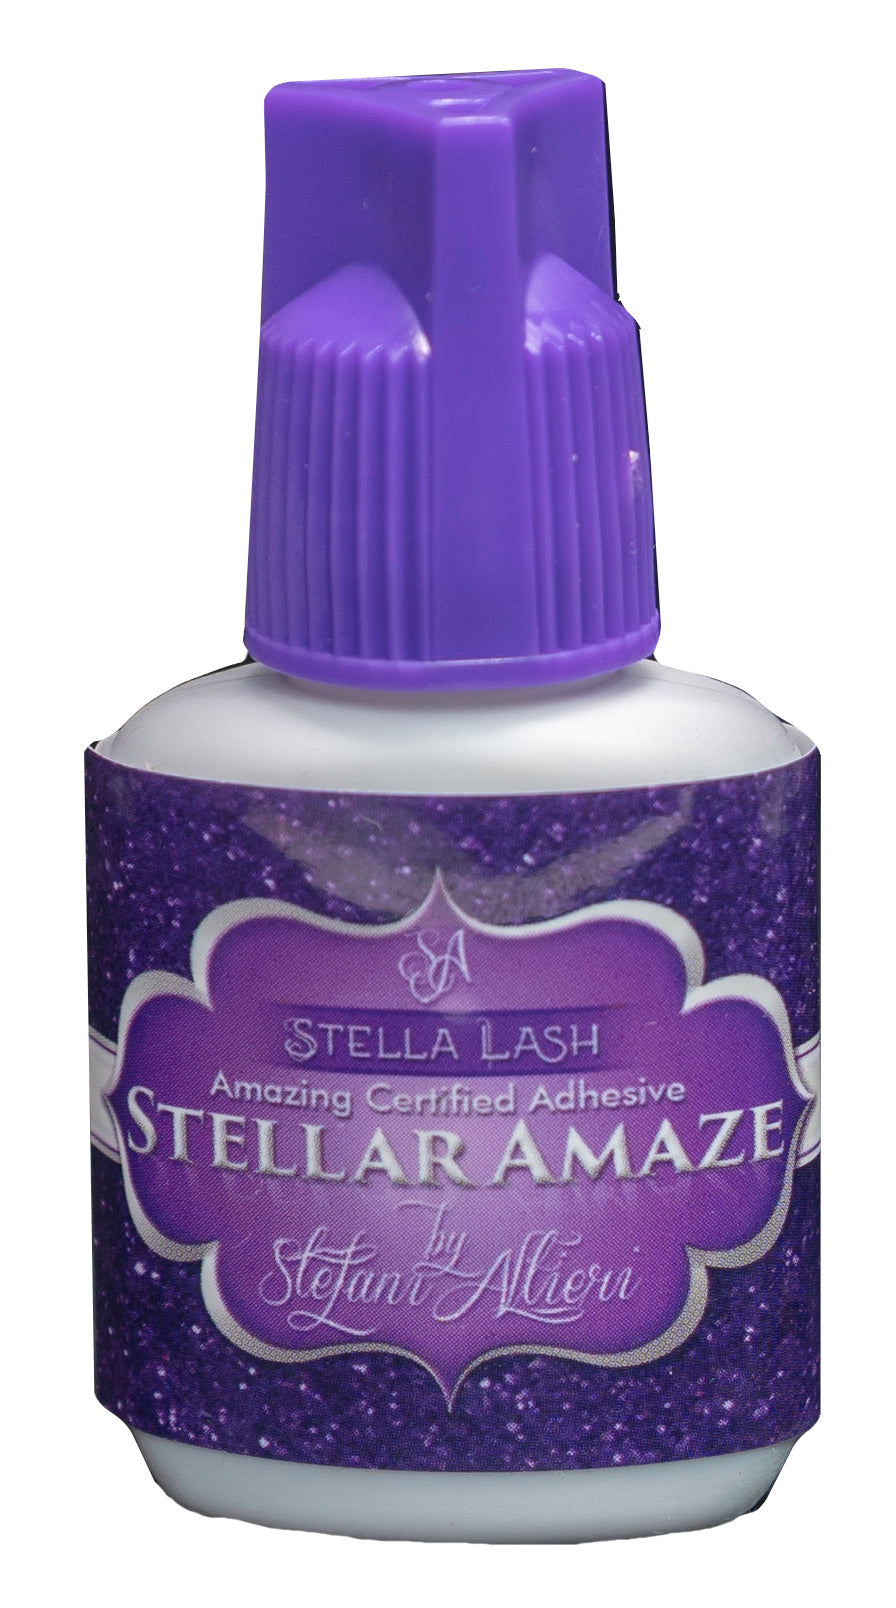 STELLAR AMAZE Adhesive 10ml - The Lash Shop @ StellaLash